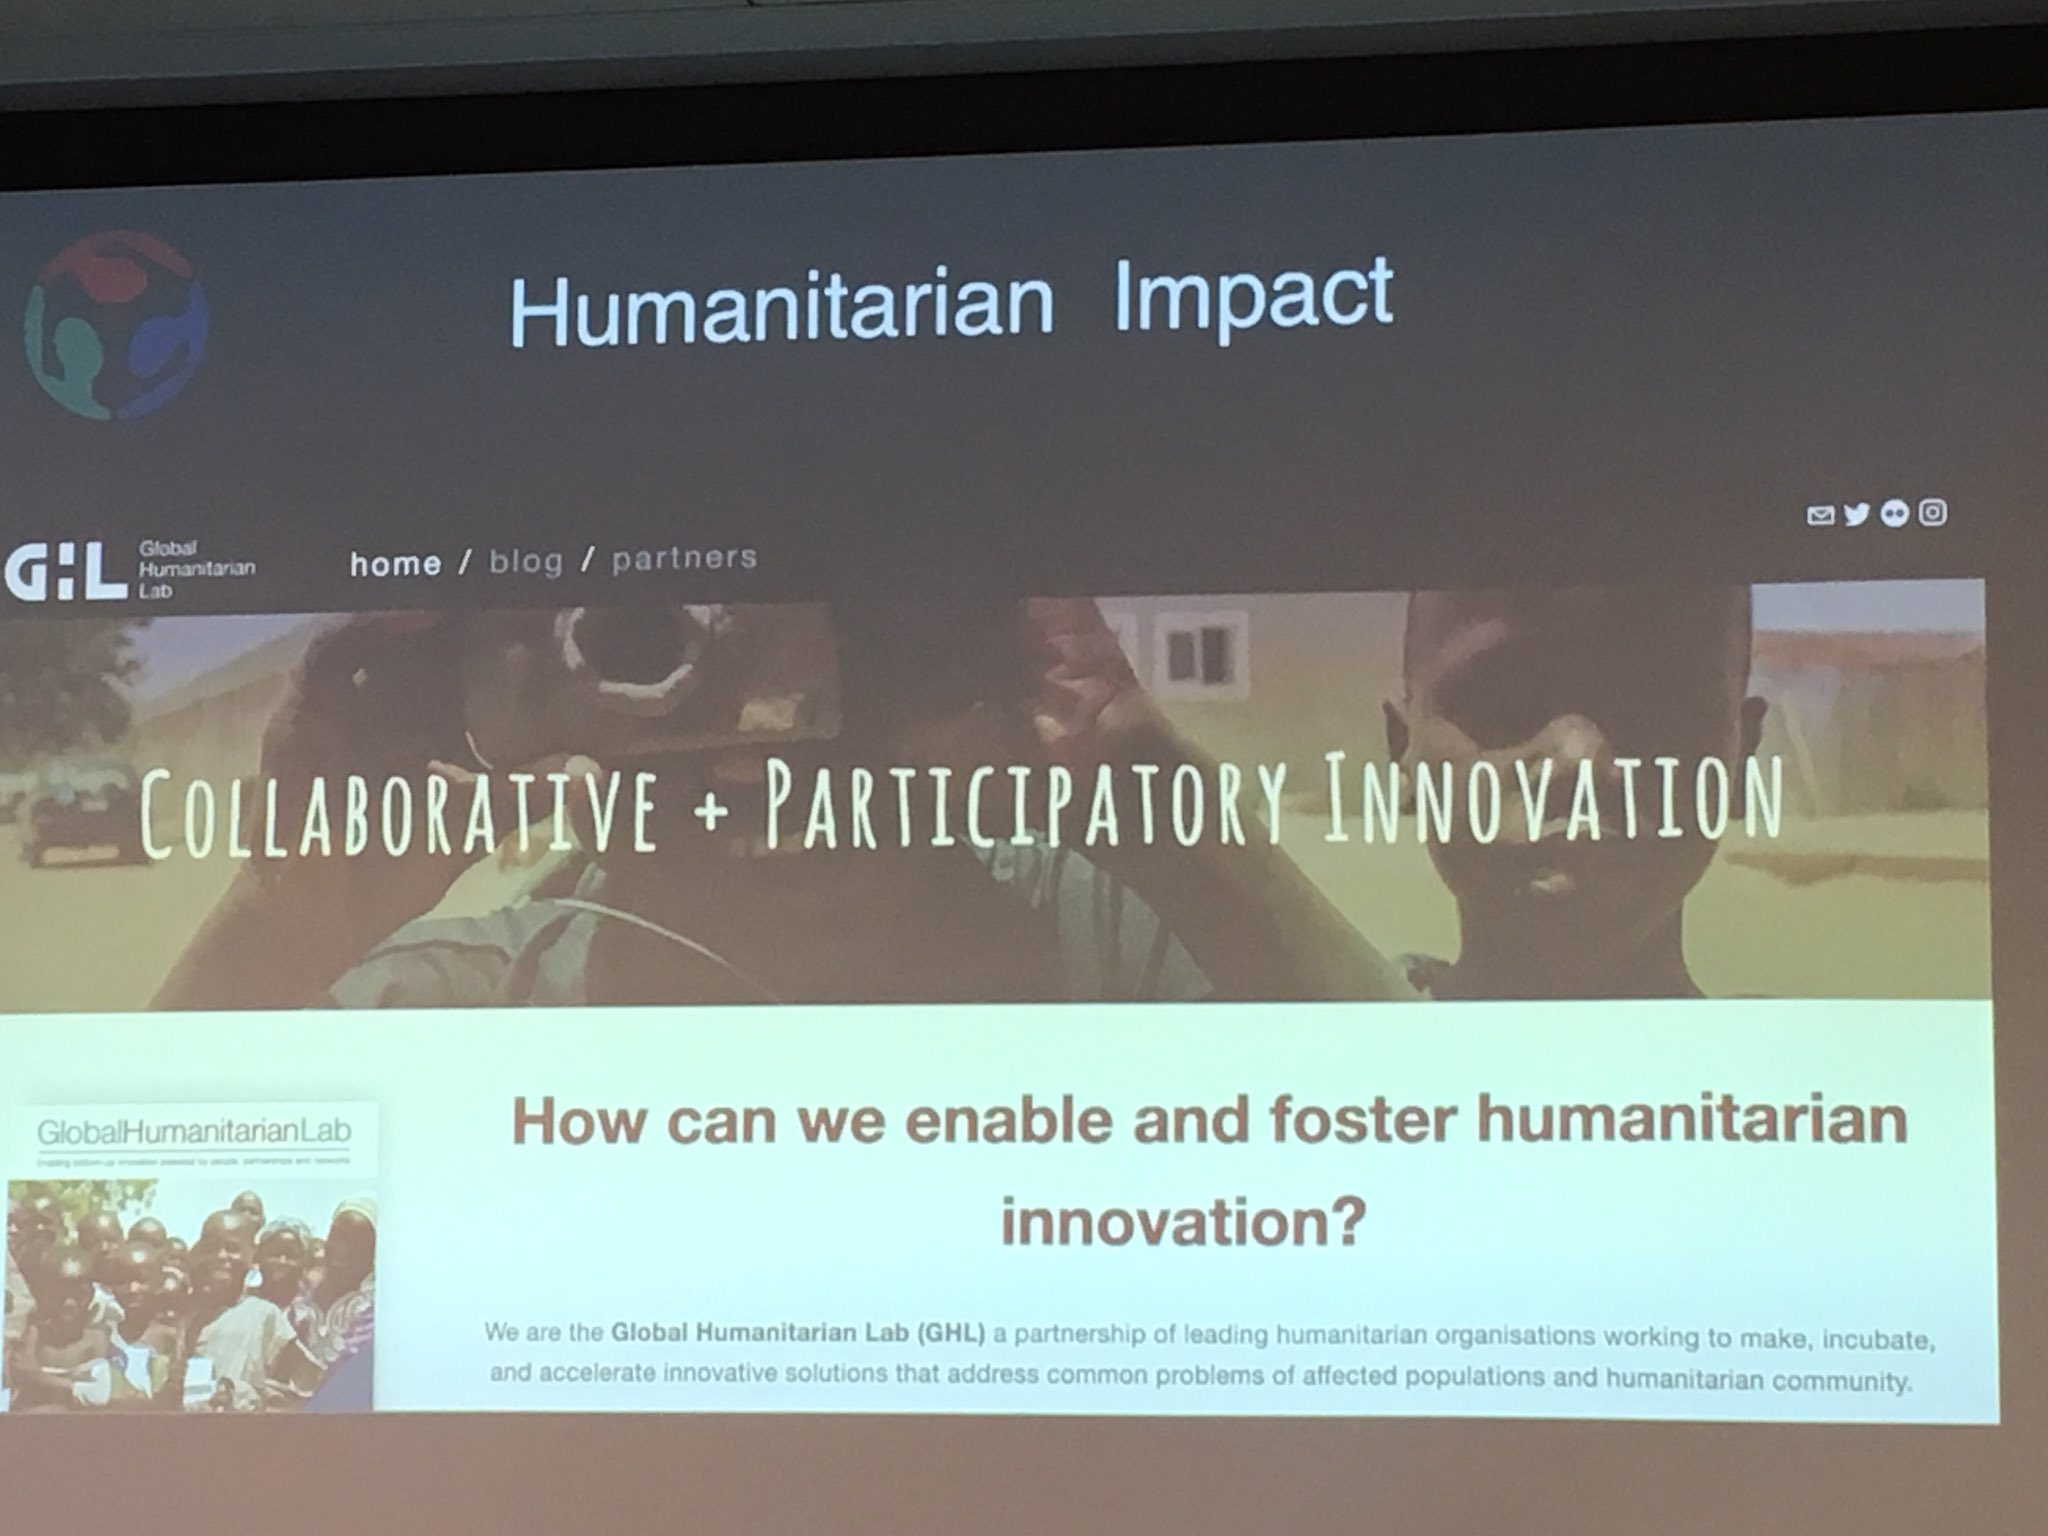 Humanitarian impact -- how can fab lab and maker movements create and sustain positive change? #DigiFabCon big ideas https://t.co/Vrs7nlwl1p